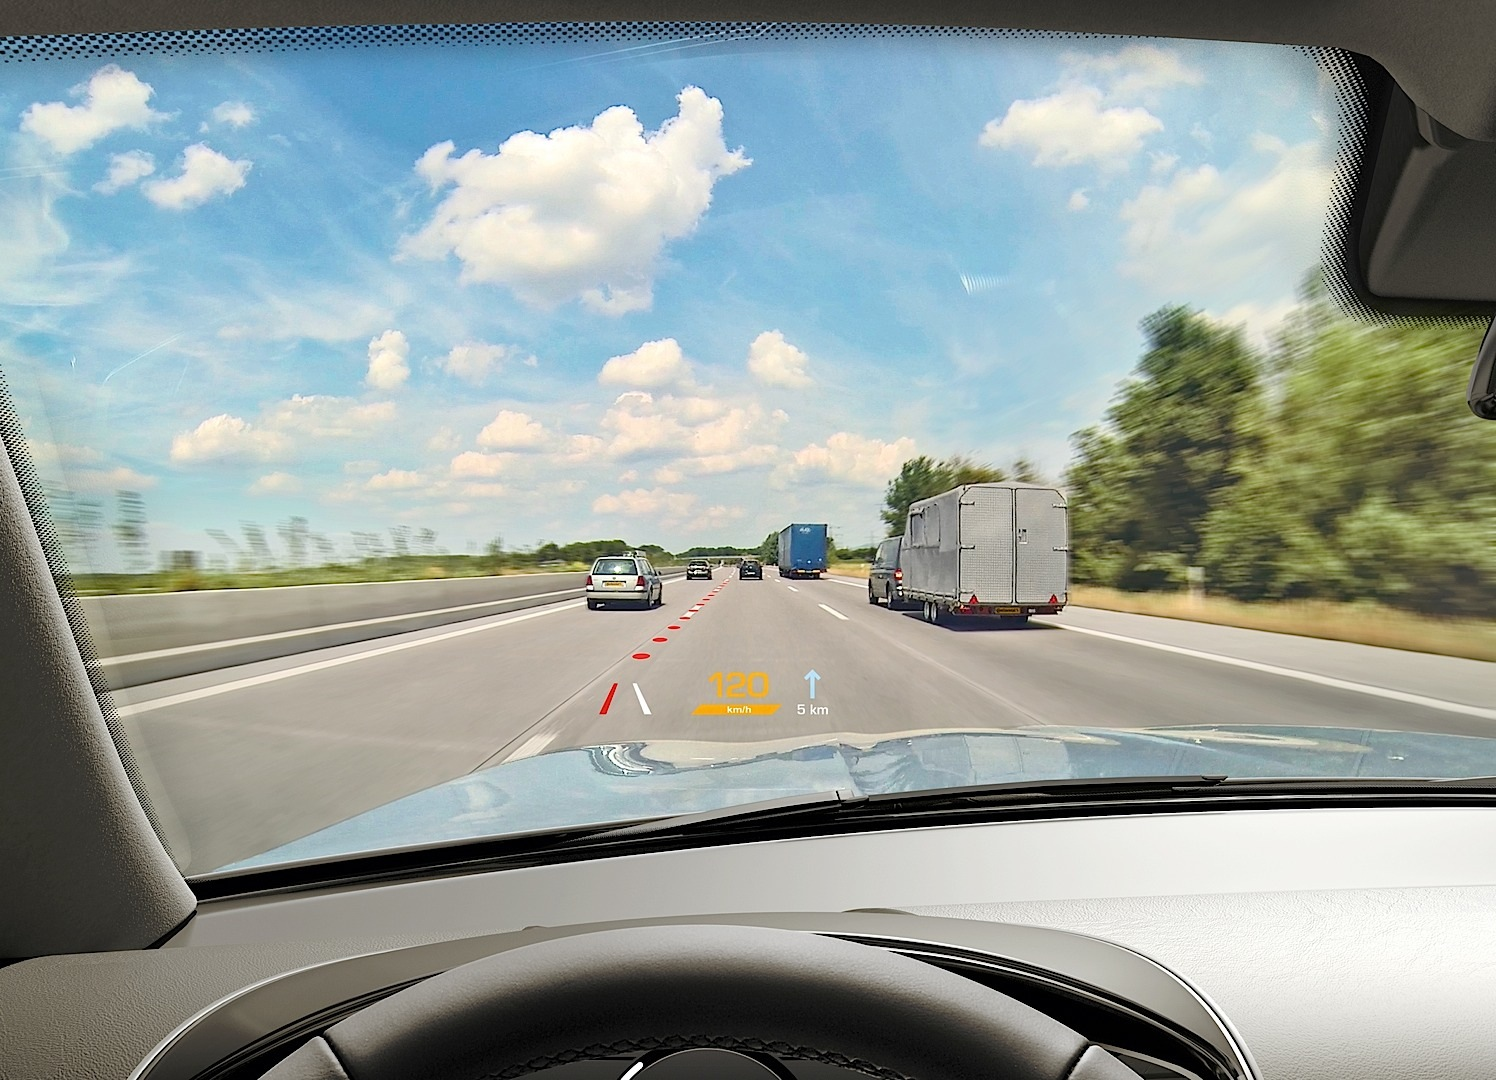 Continental Shows Its Augmented Reality Head Up Display